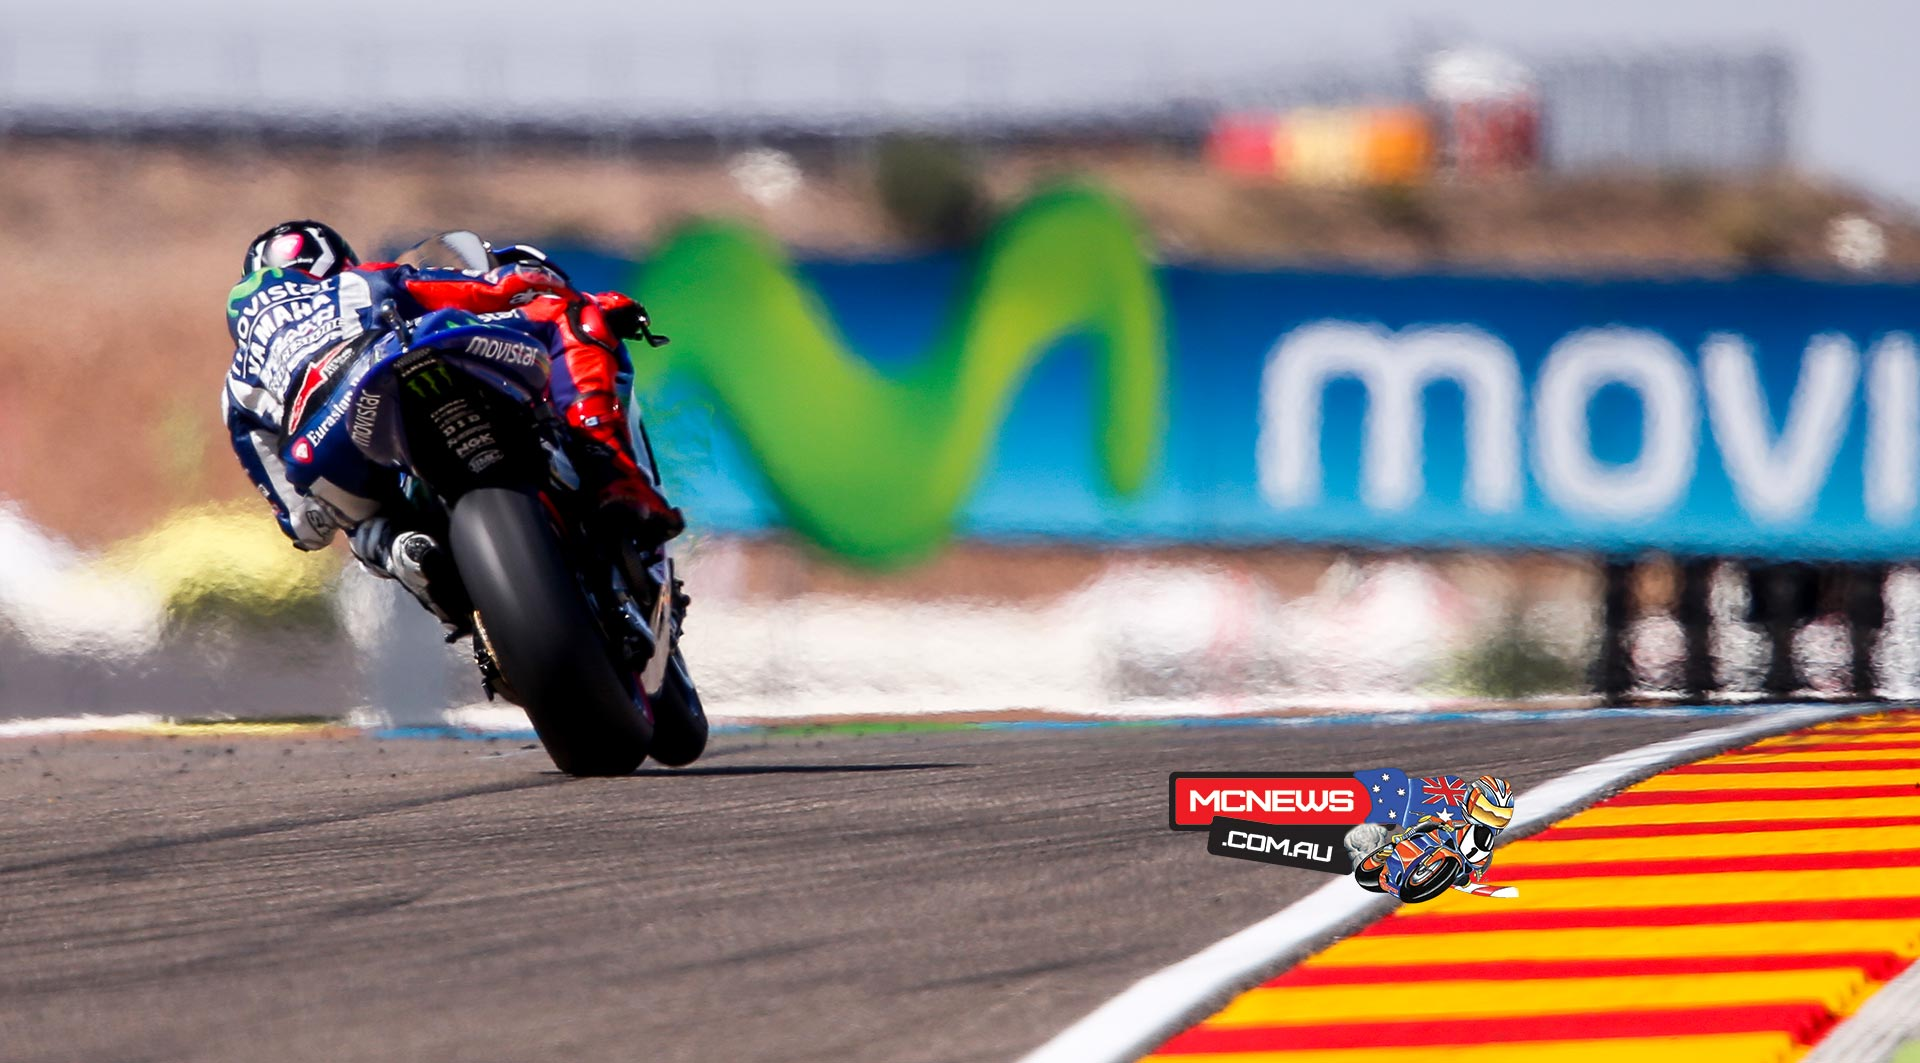 Jorge Lorenzo set the fastest times in each sector on the way to topping both sessions on Friday at the Gran Premio Movistar de Aragón.